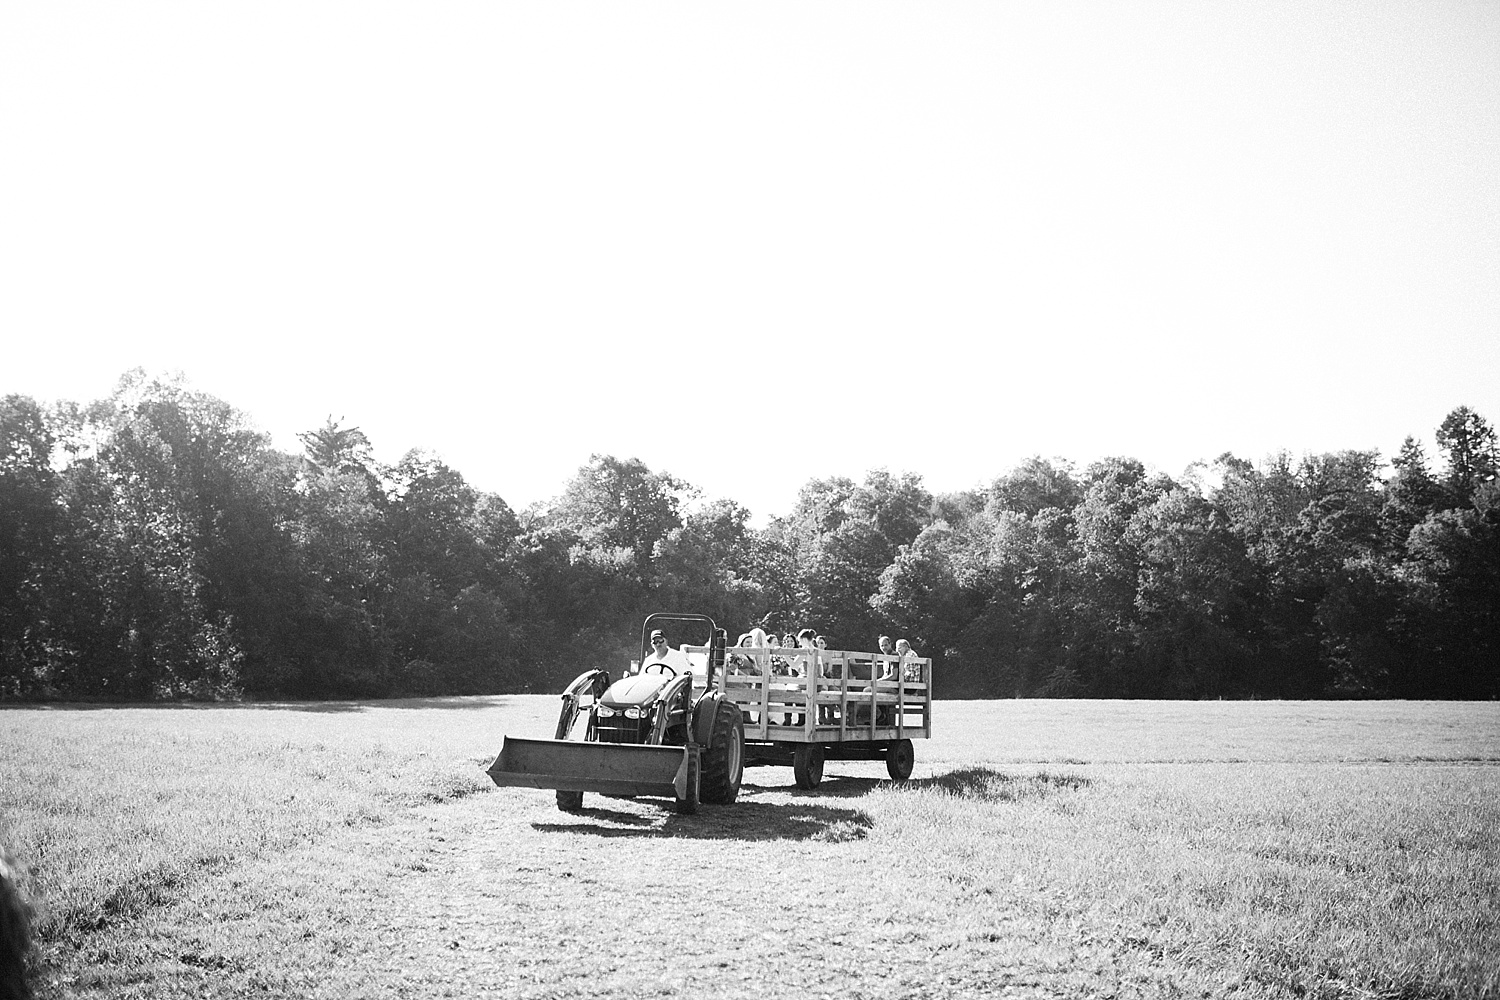 jennyryan_newbeginnings_farmstead_upstatenewyork_wedding_image083.jpg